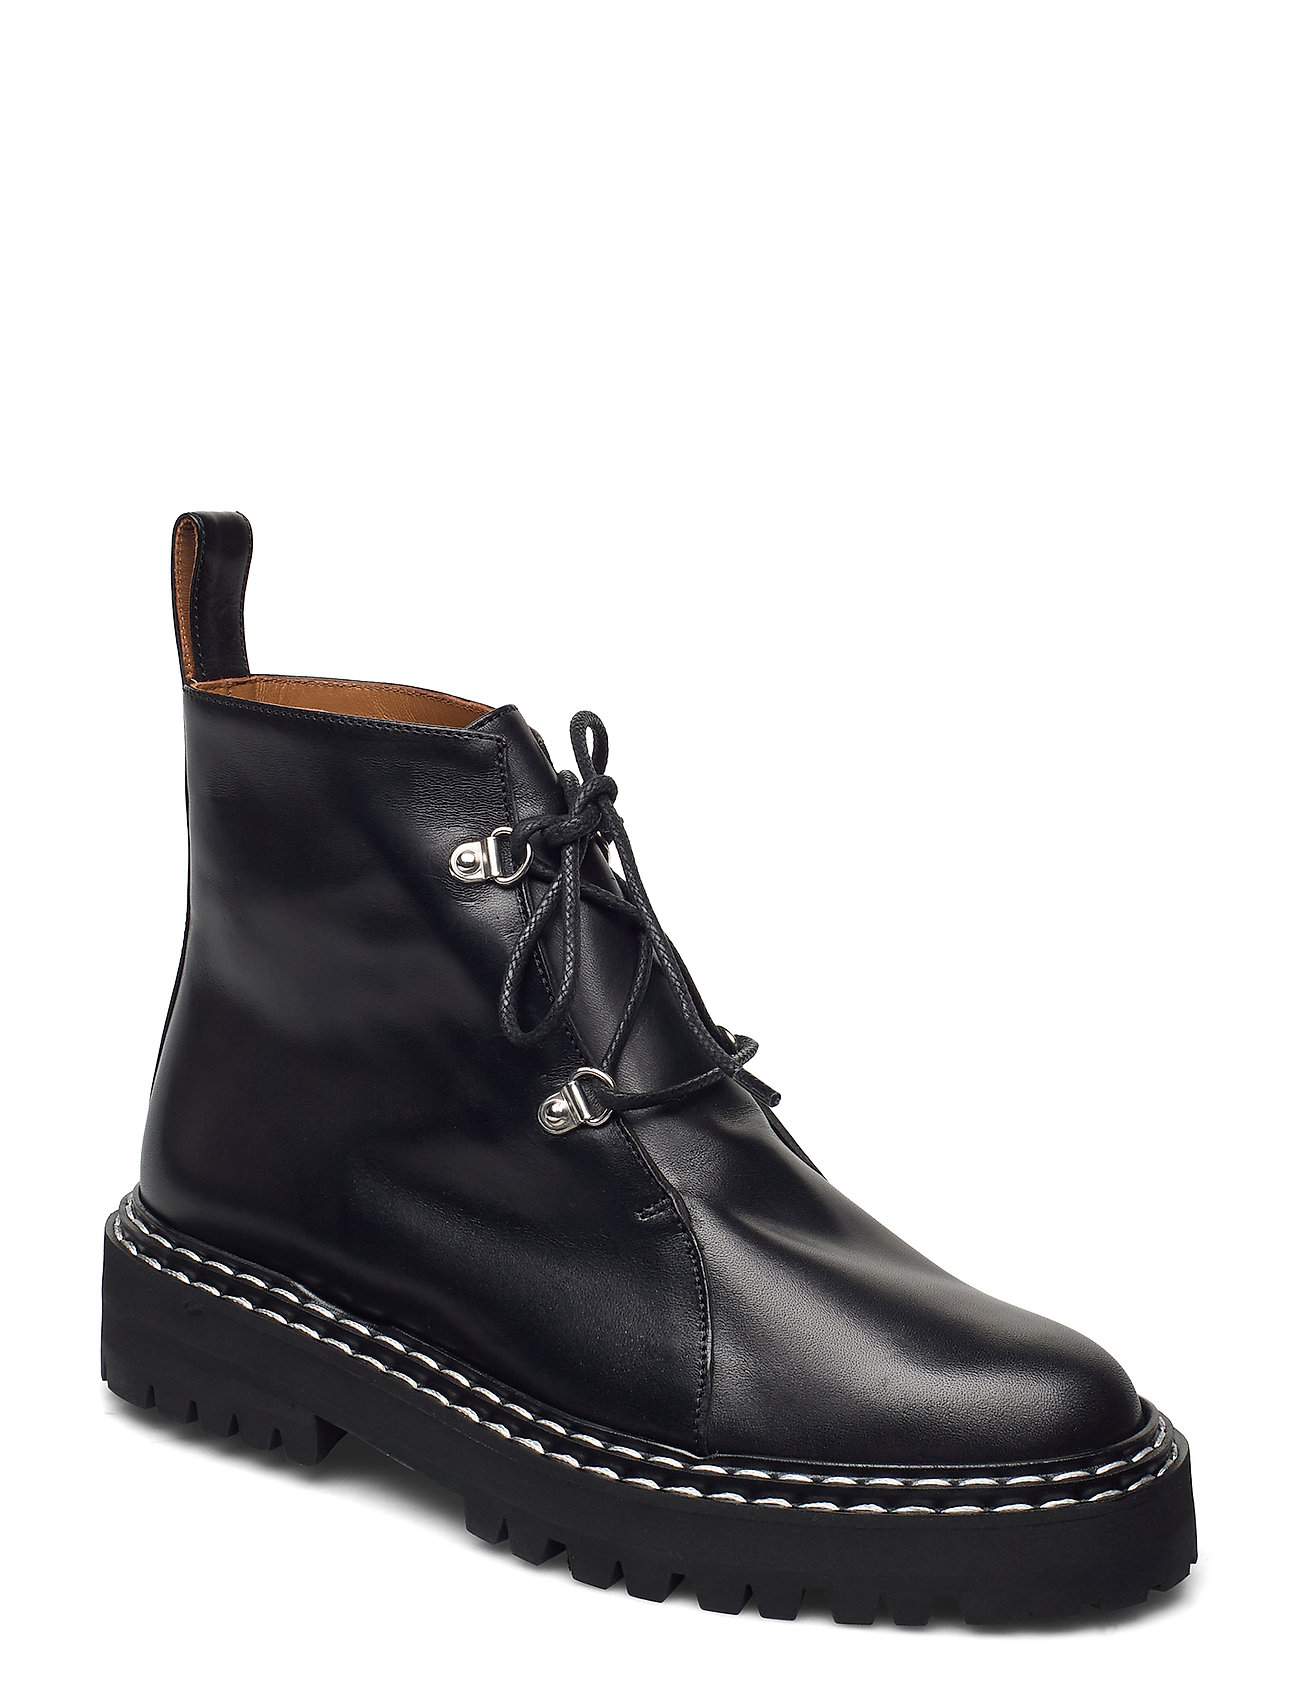 Image of Cozzana Vacchetta Shoes Boots Ankle Boots Ankle Boot - Flat Sort ATP Atelier (3445310175)